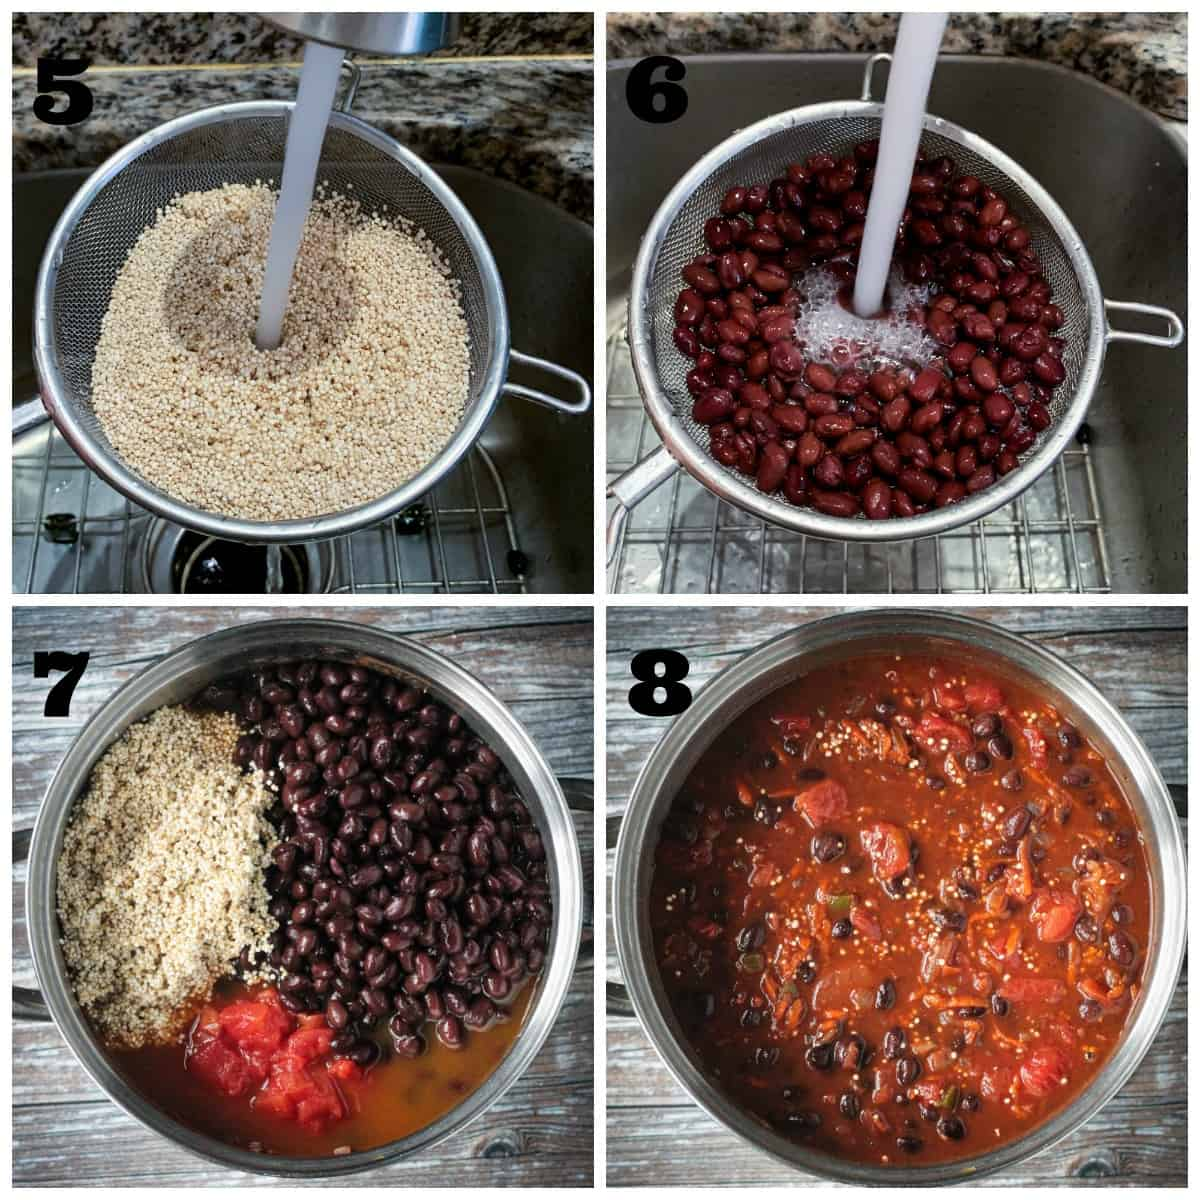 4-photo collage: rinsing quinoa; rinsing beans; added to pot; combined with tomatoes & broth.